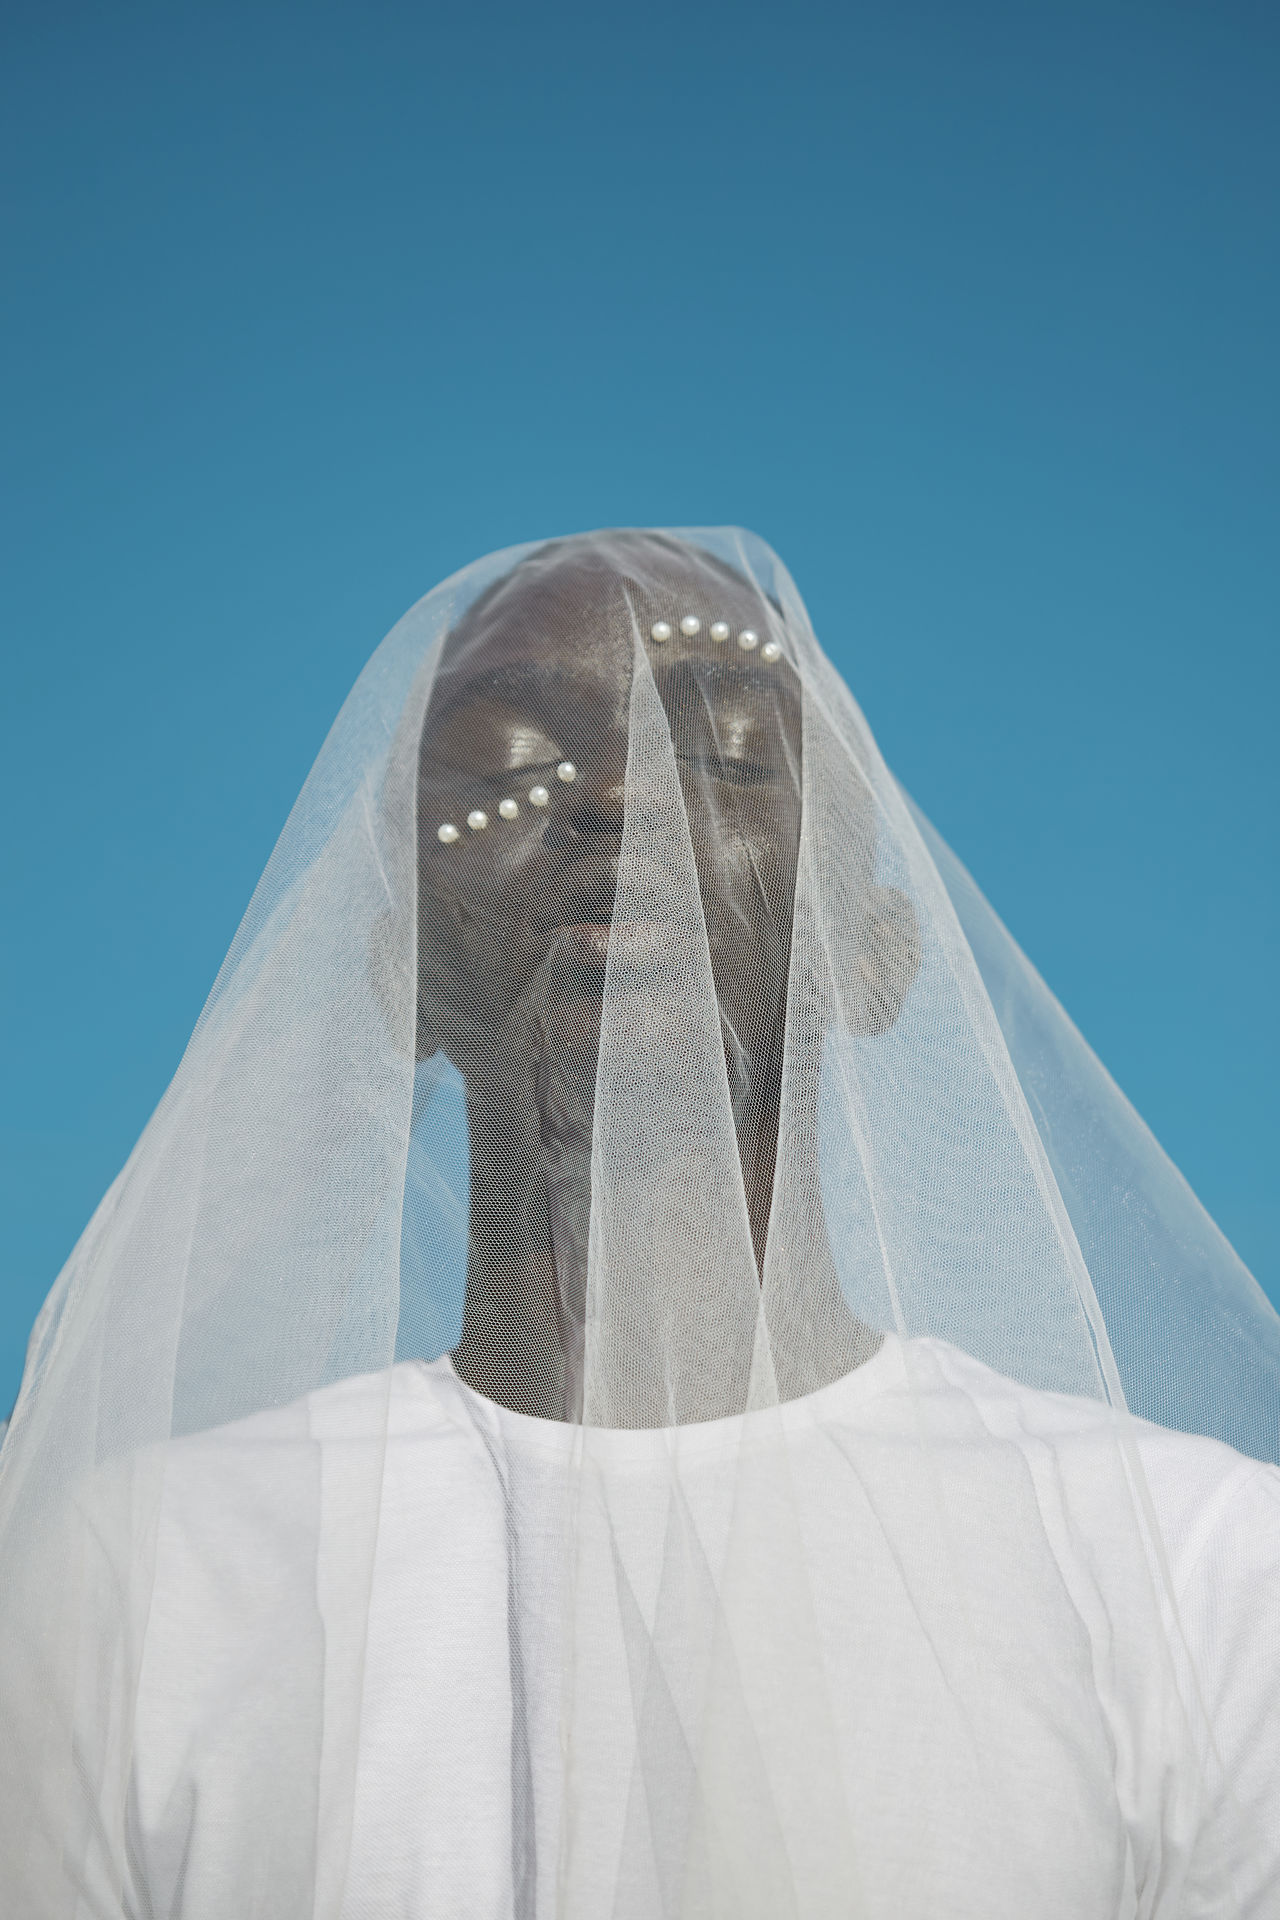 LOW ANGLE VIEW OF MAN COVERING FACE AGAINST BLUE SKY